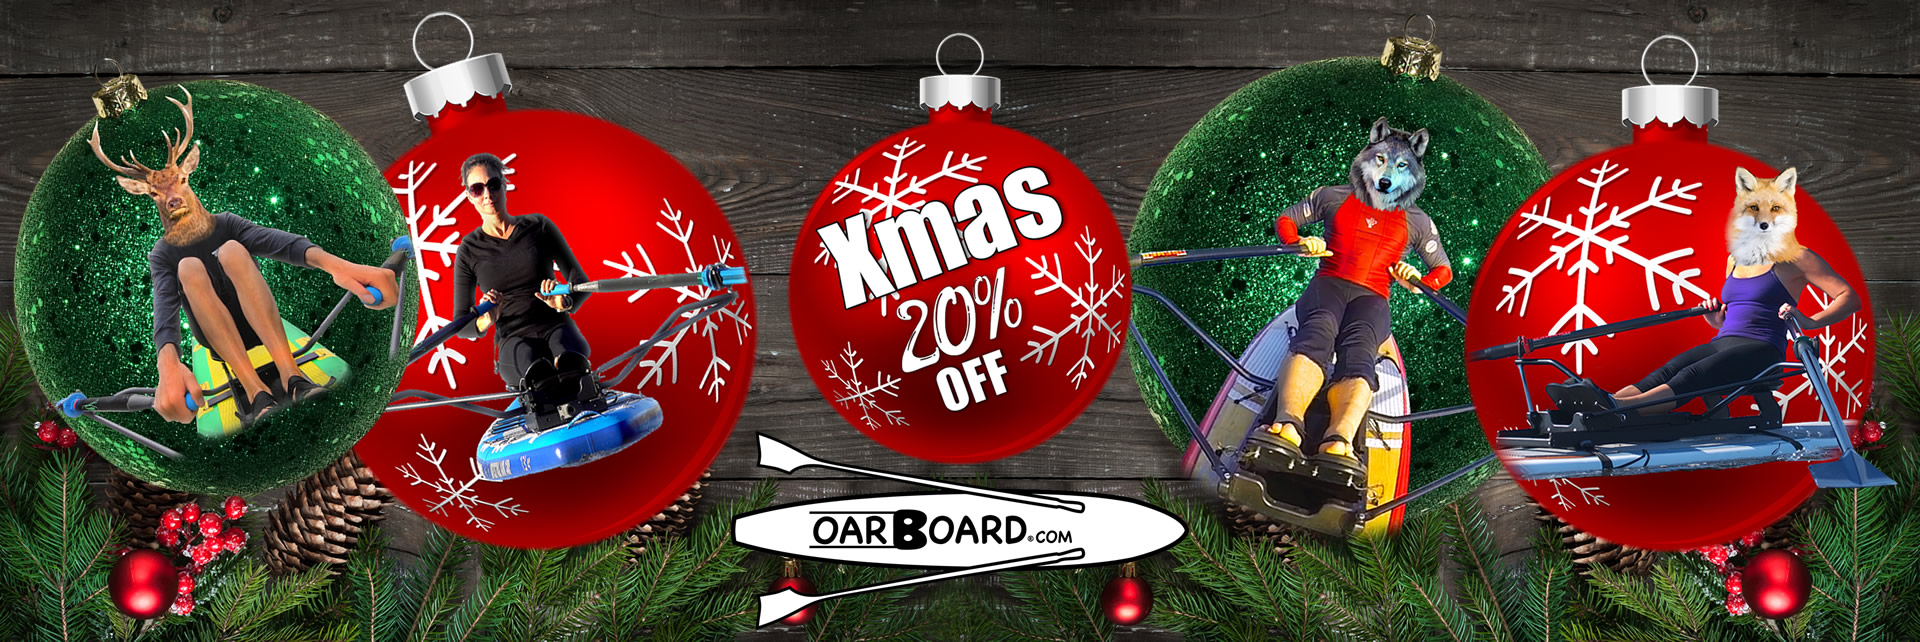 The Perfect Gift! Shop Oar Board® Rower, SUPs, Combos, Sculling Oars & Accessories